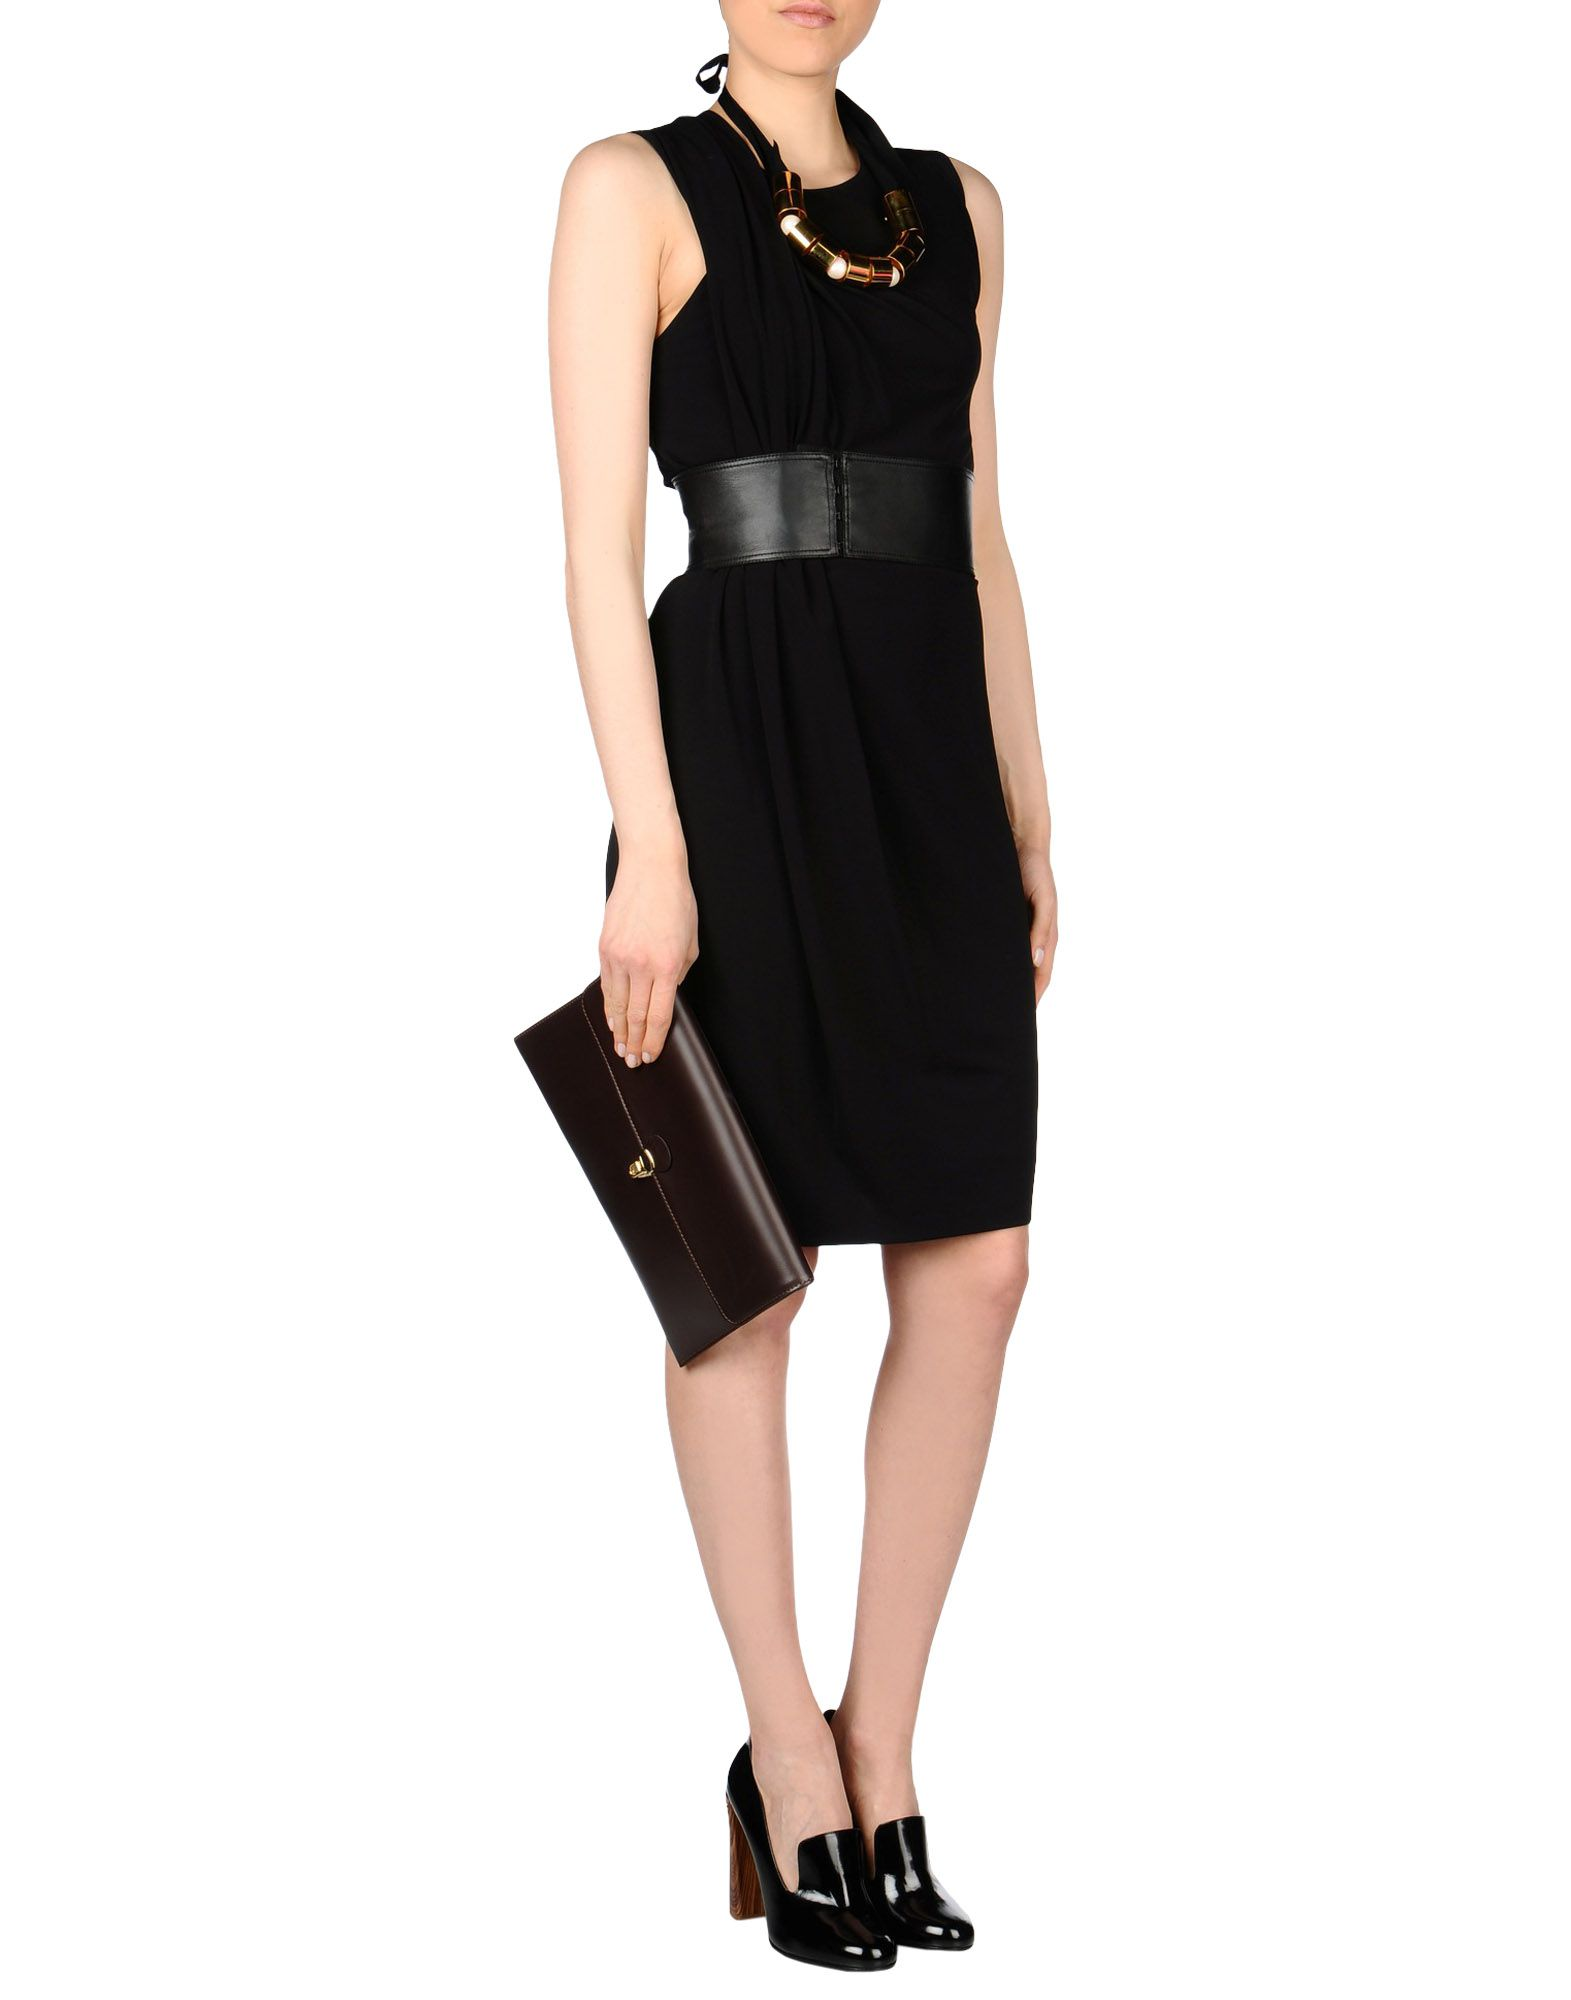 Alexander wang black dress 3